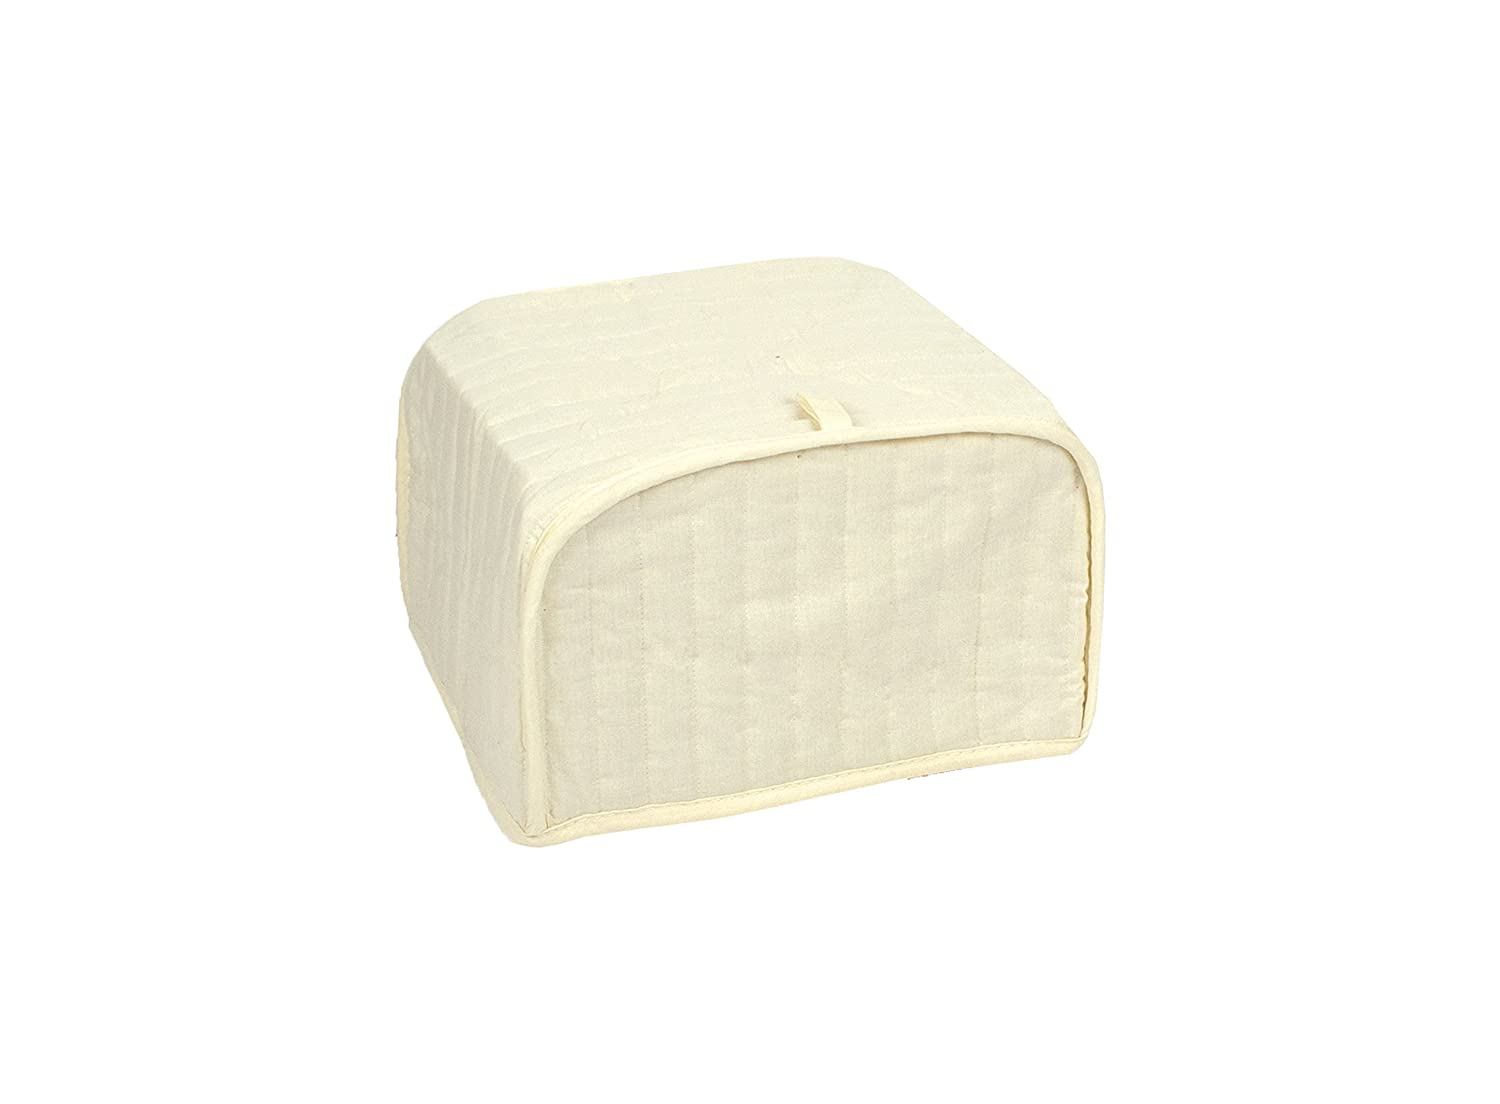 RITZ Polyester / Cotton Quilted Two Slice Toaster Appliance Cover, Dust and Fingerprint Protection, Machine Washable, Natural